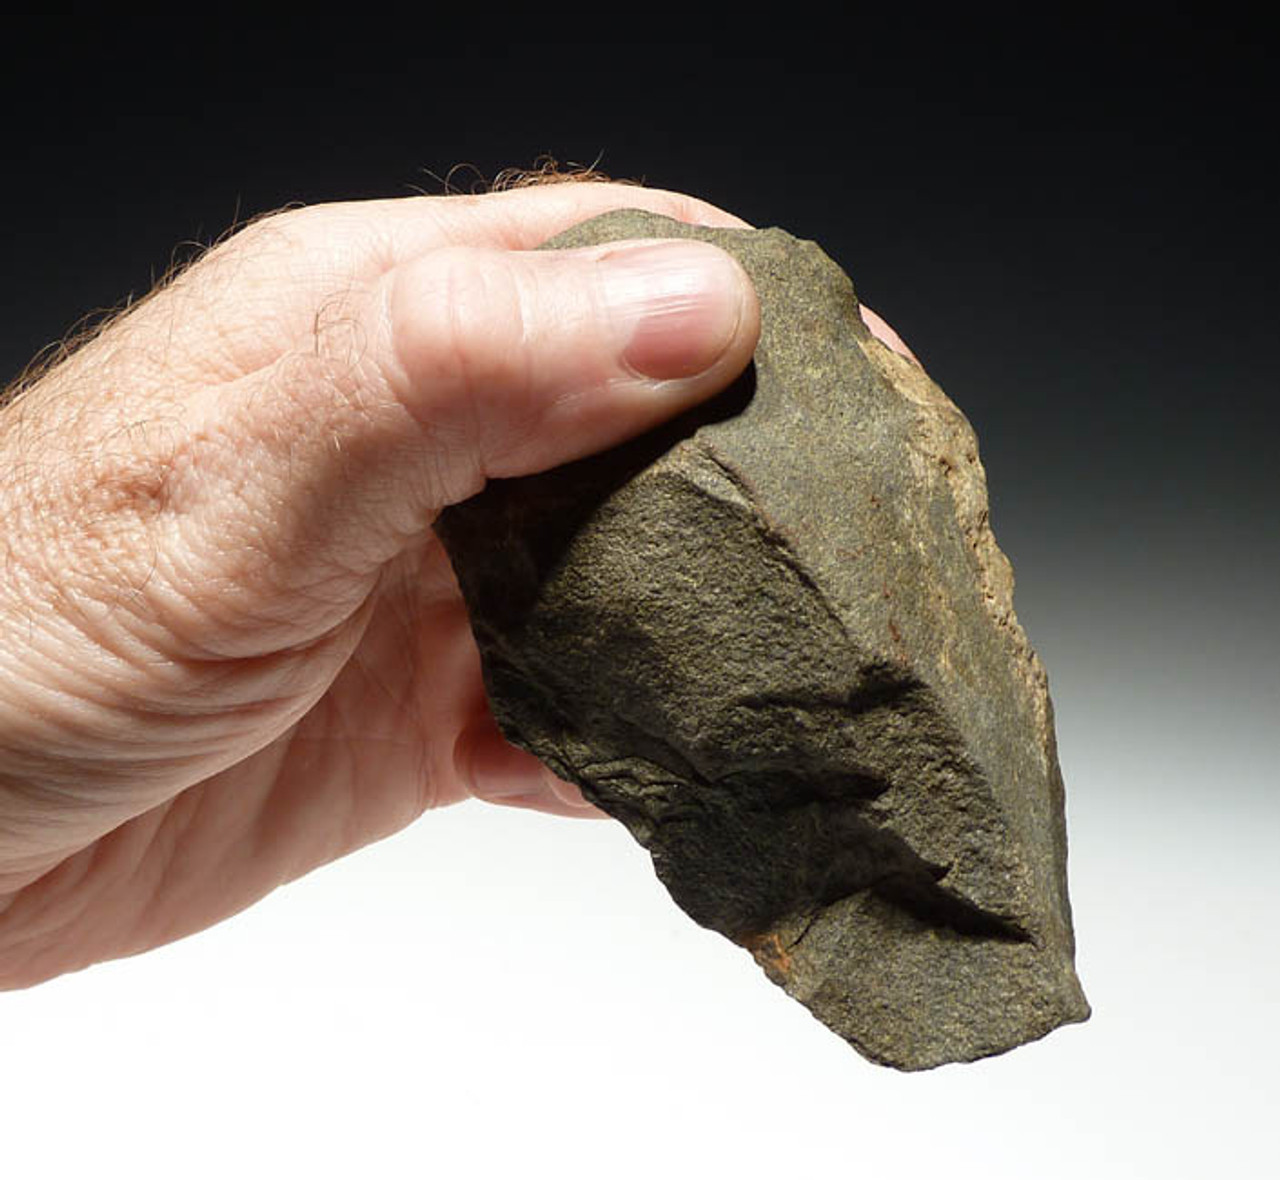 PB077 - EXCEPTIONAL FRENCH EUROPEAN LOWER PALEOLITHIC ACHEULIAN HANDAXE WITH EXTENSIVE FLAKING FROM HAUTE GARONNE